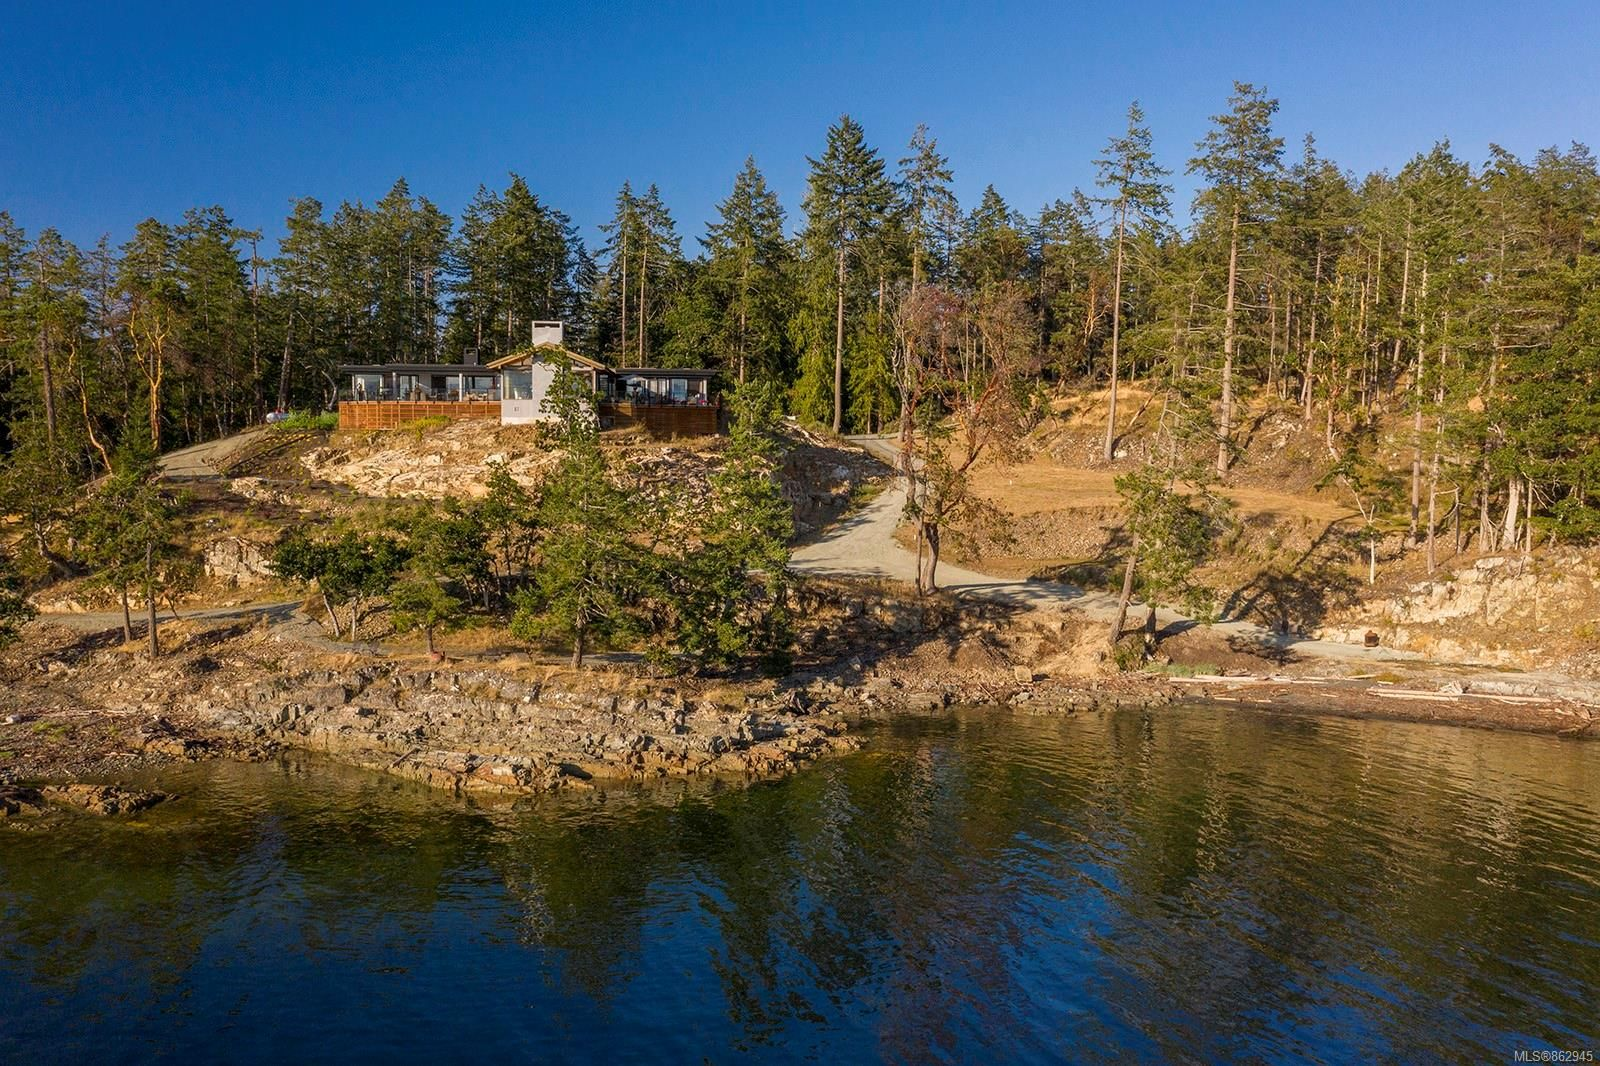 Photo 55: Photos: 1675 Claudet Rd in : PQ Nanoose House for sale (Parksville/Qualicum)  : MLS®# 862945